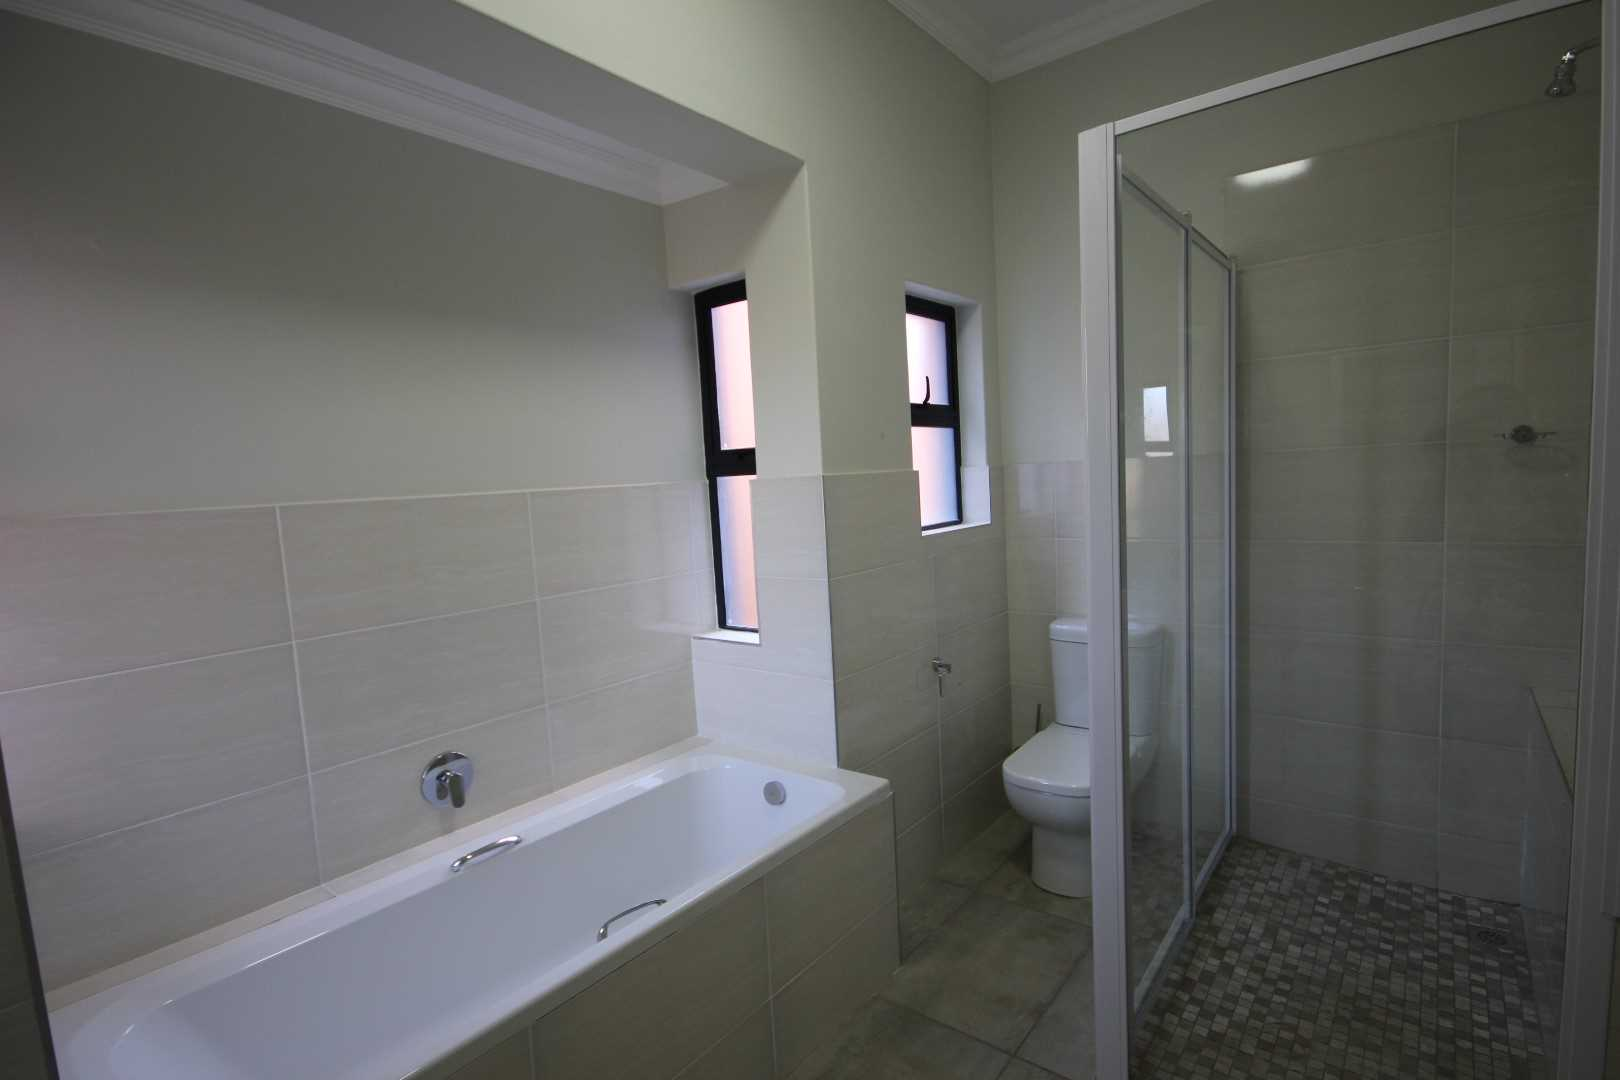 Ensuite bathroom with extra large shower